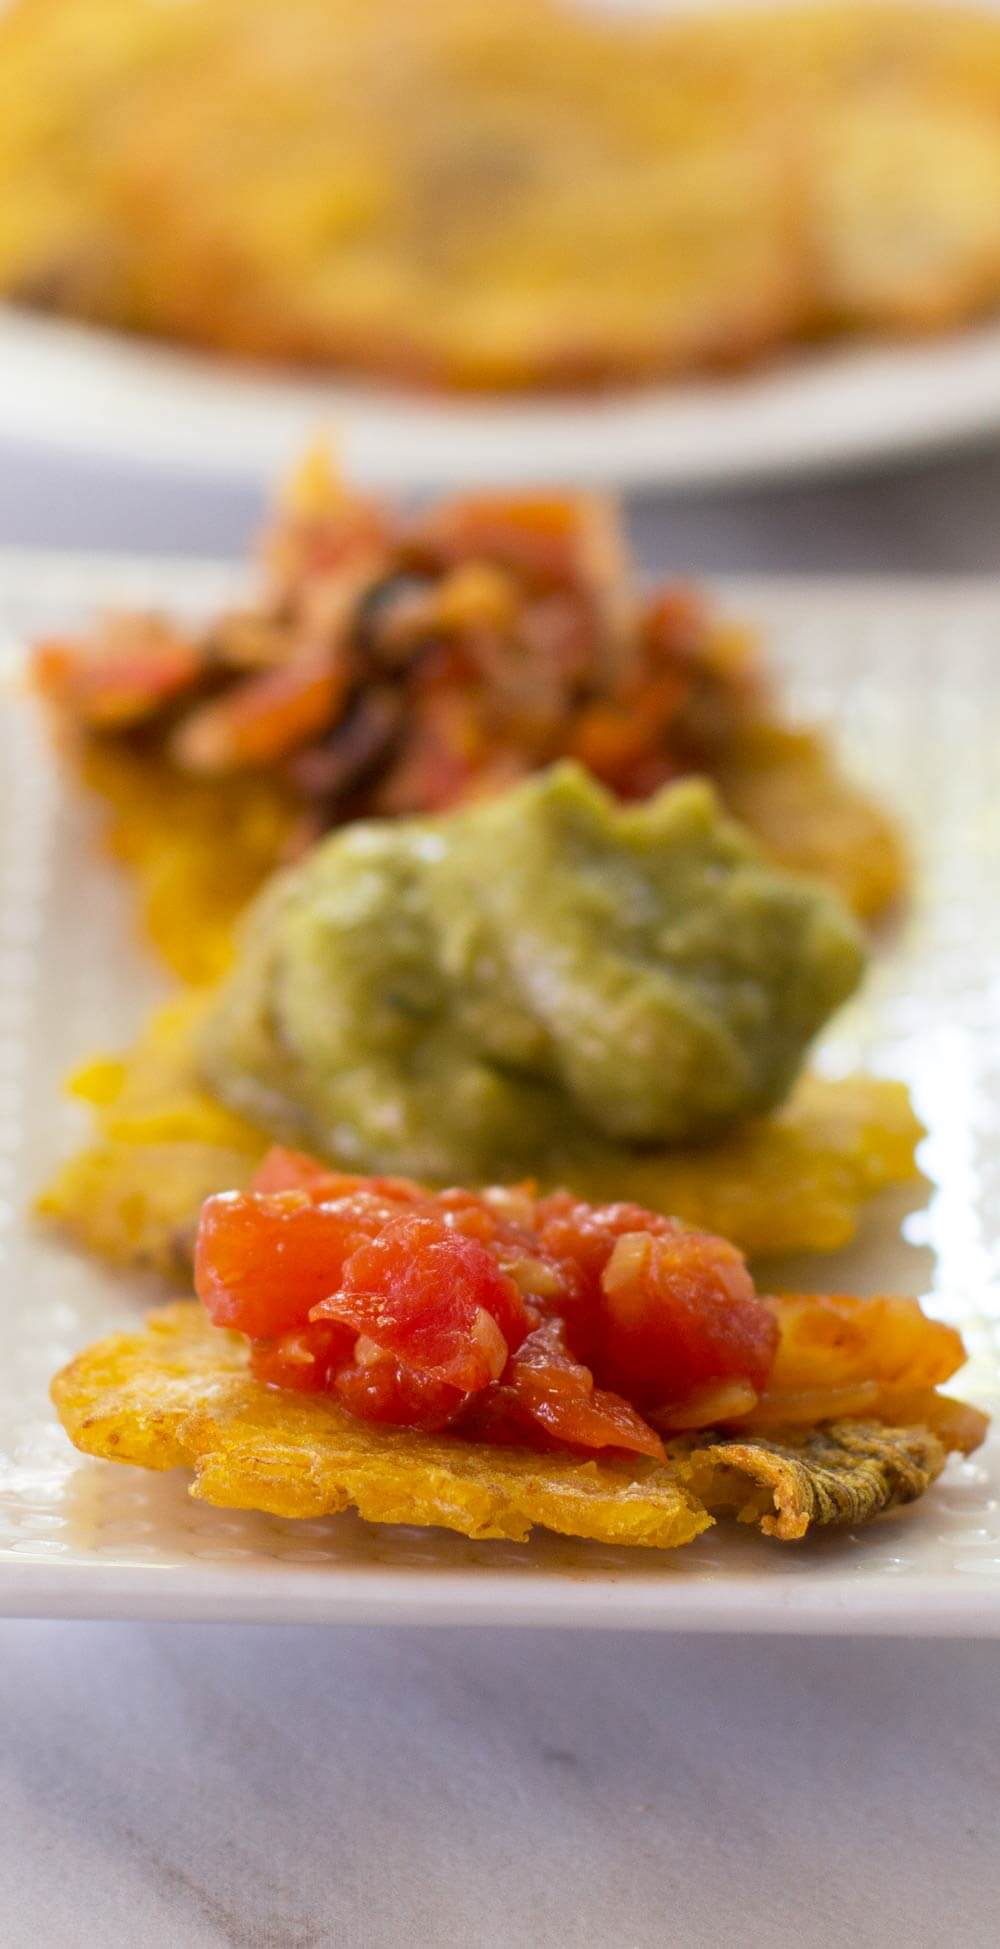 Patagones or green plantains on a plate with hogao and other toppings on top.